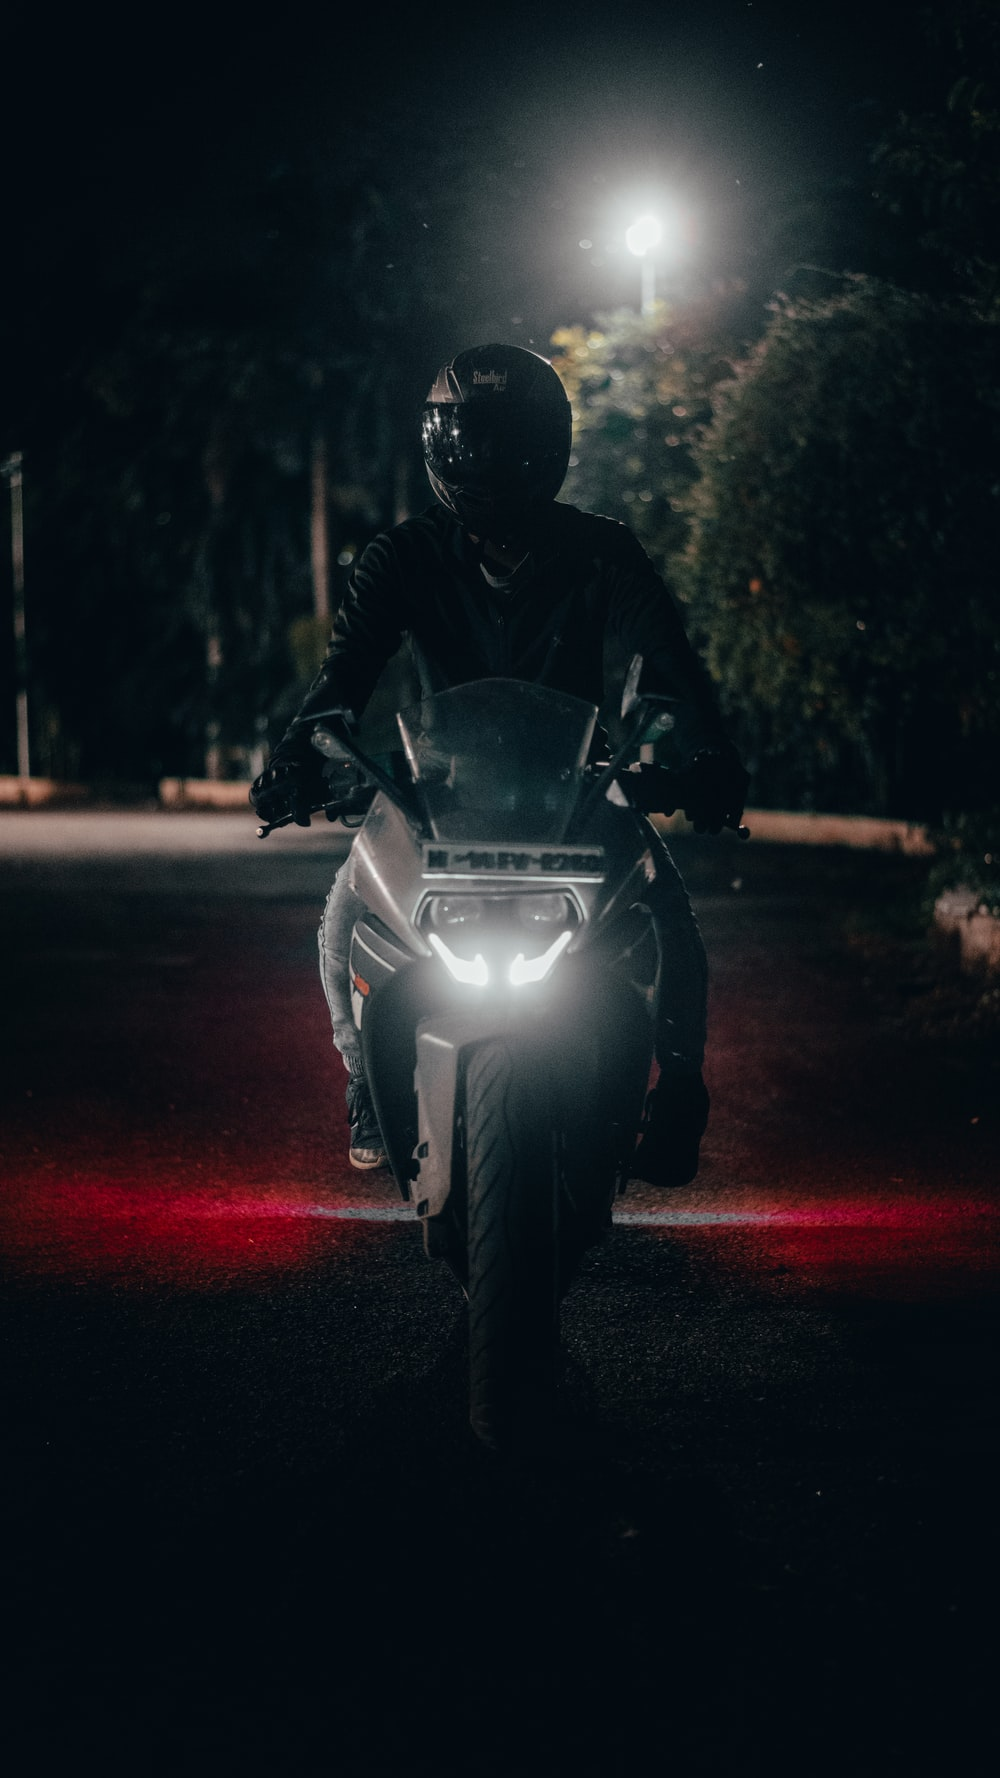 man in black jacket riding on motorcycle during night time